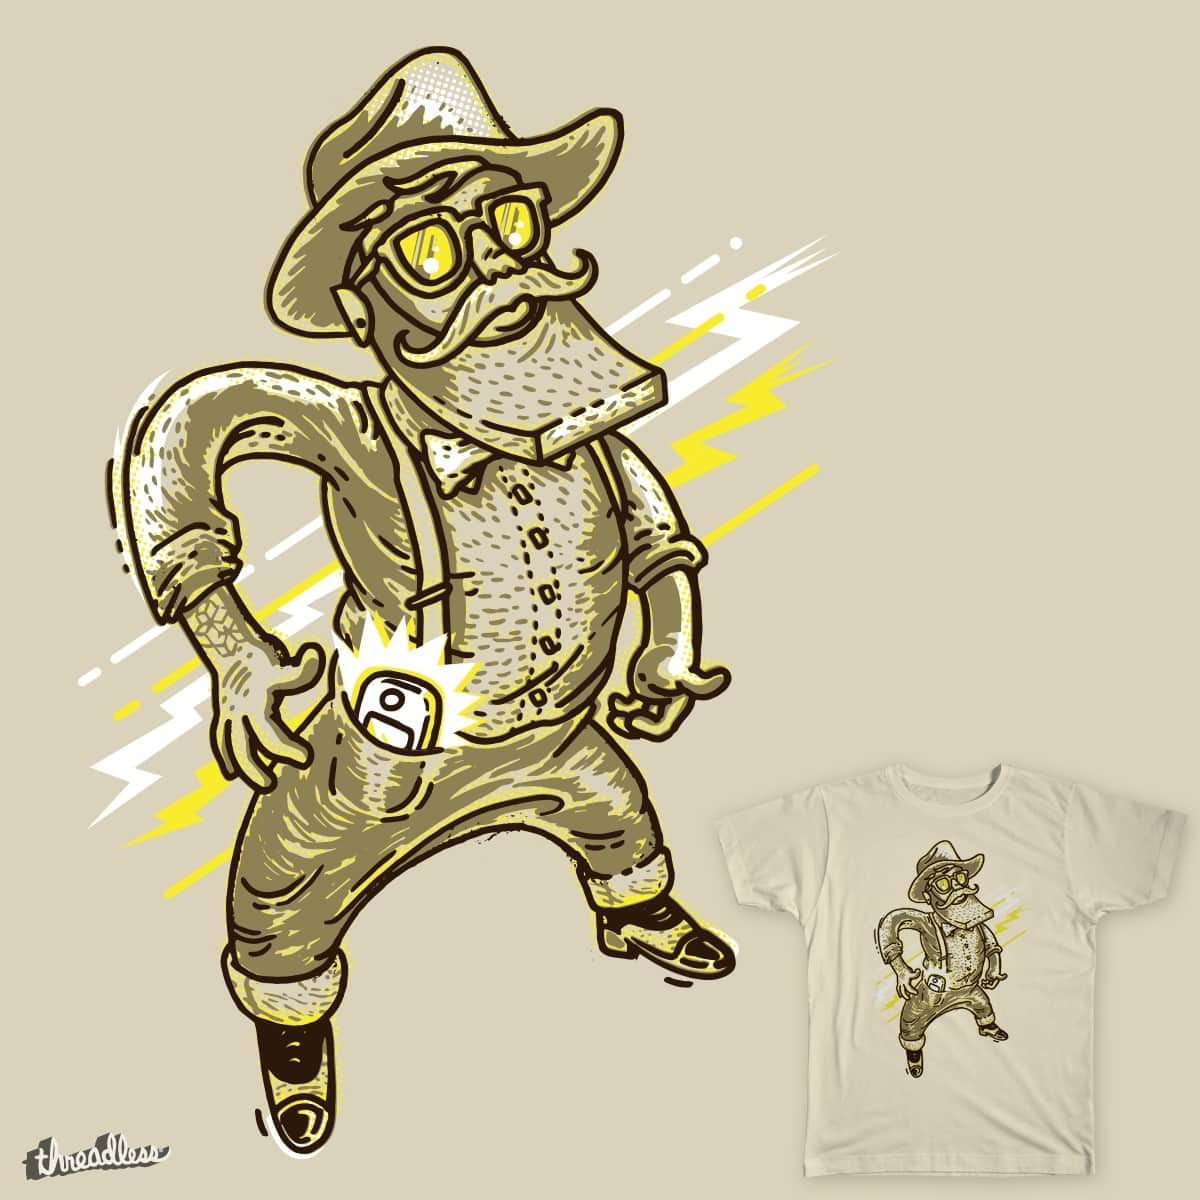 Desenfunda, Hipster! [Hipster Fast Draw!] by Jesusrodriguez on Threadless